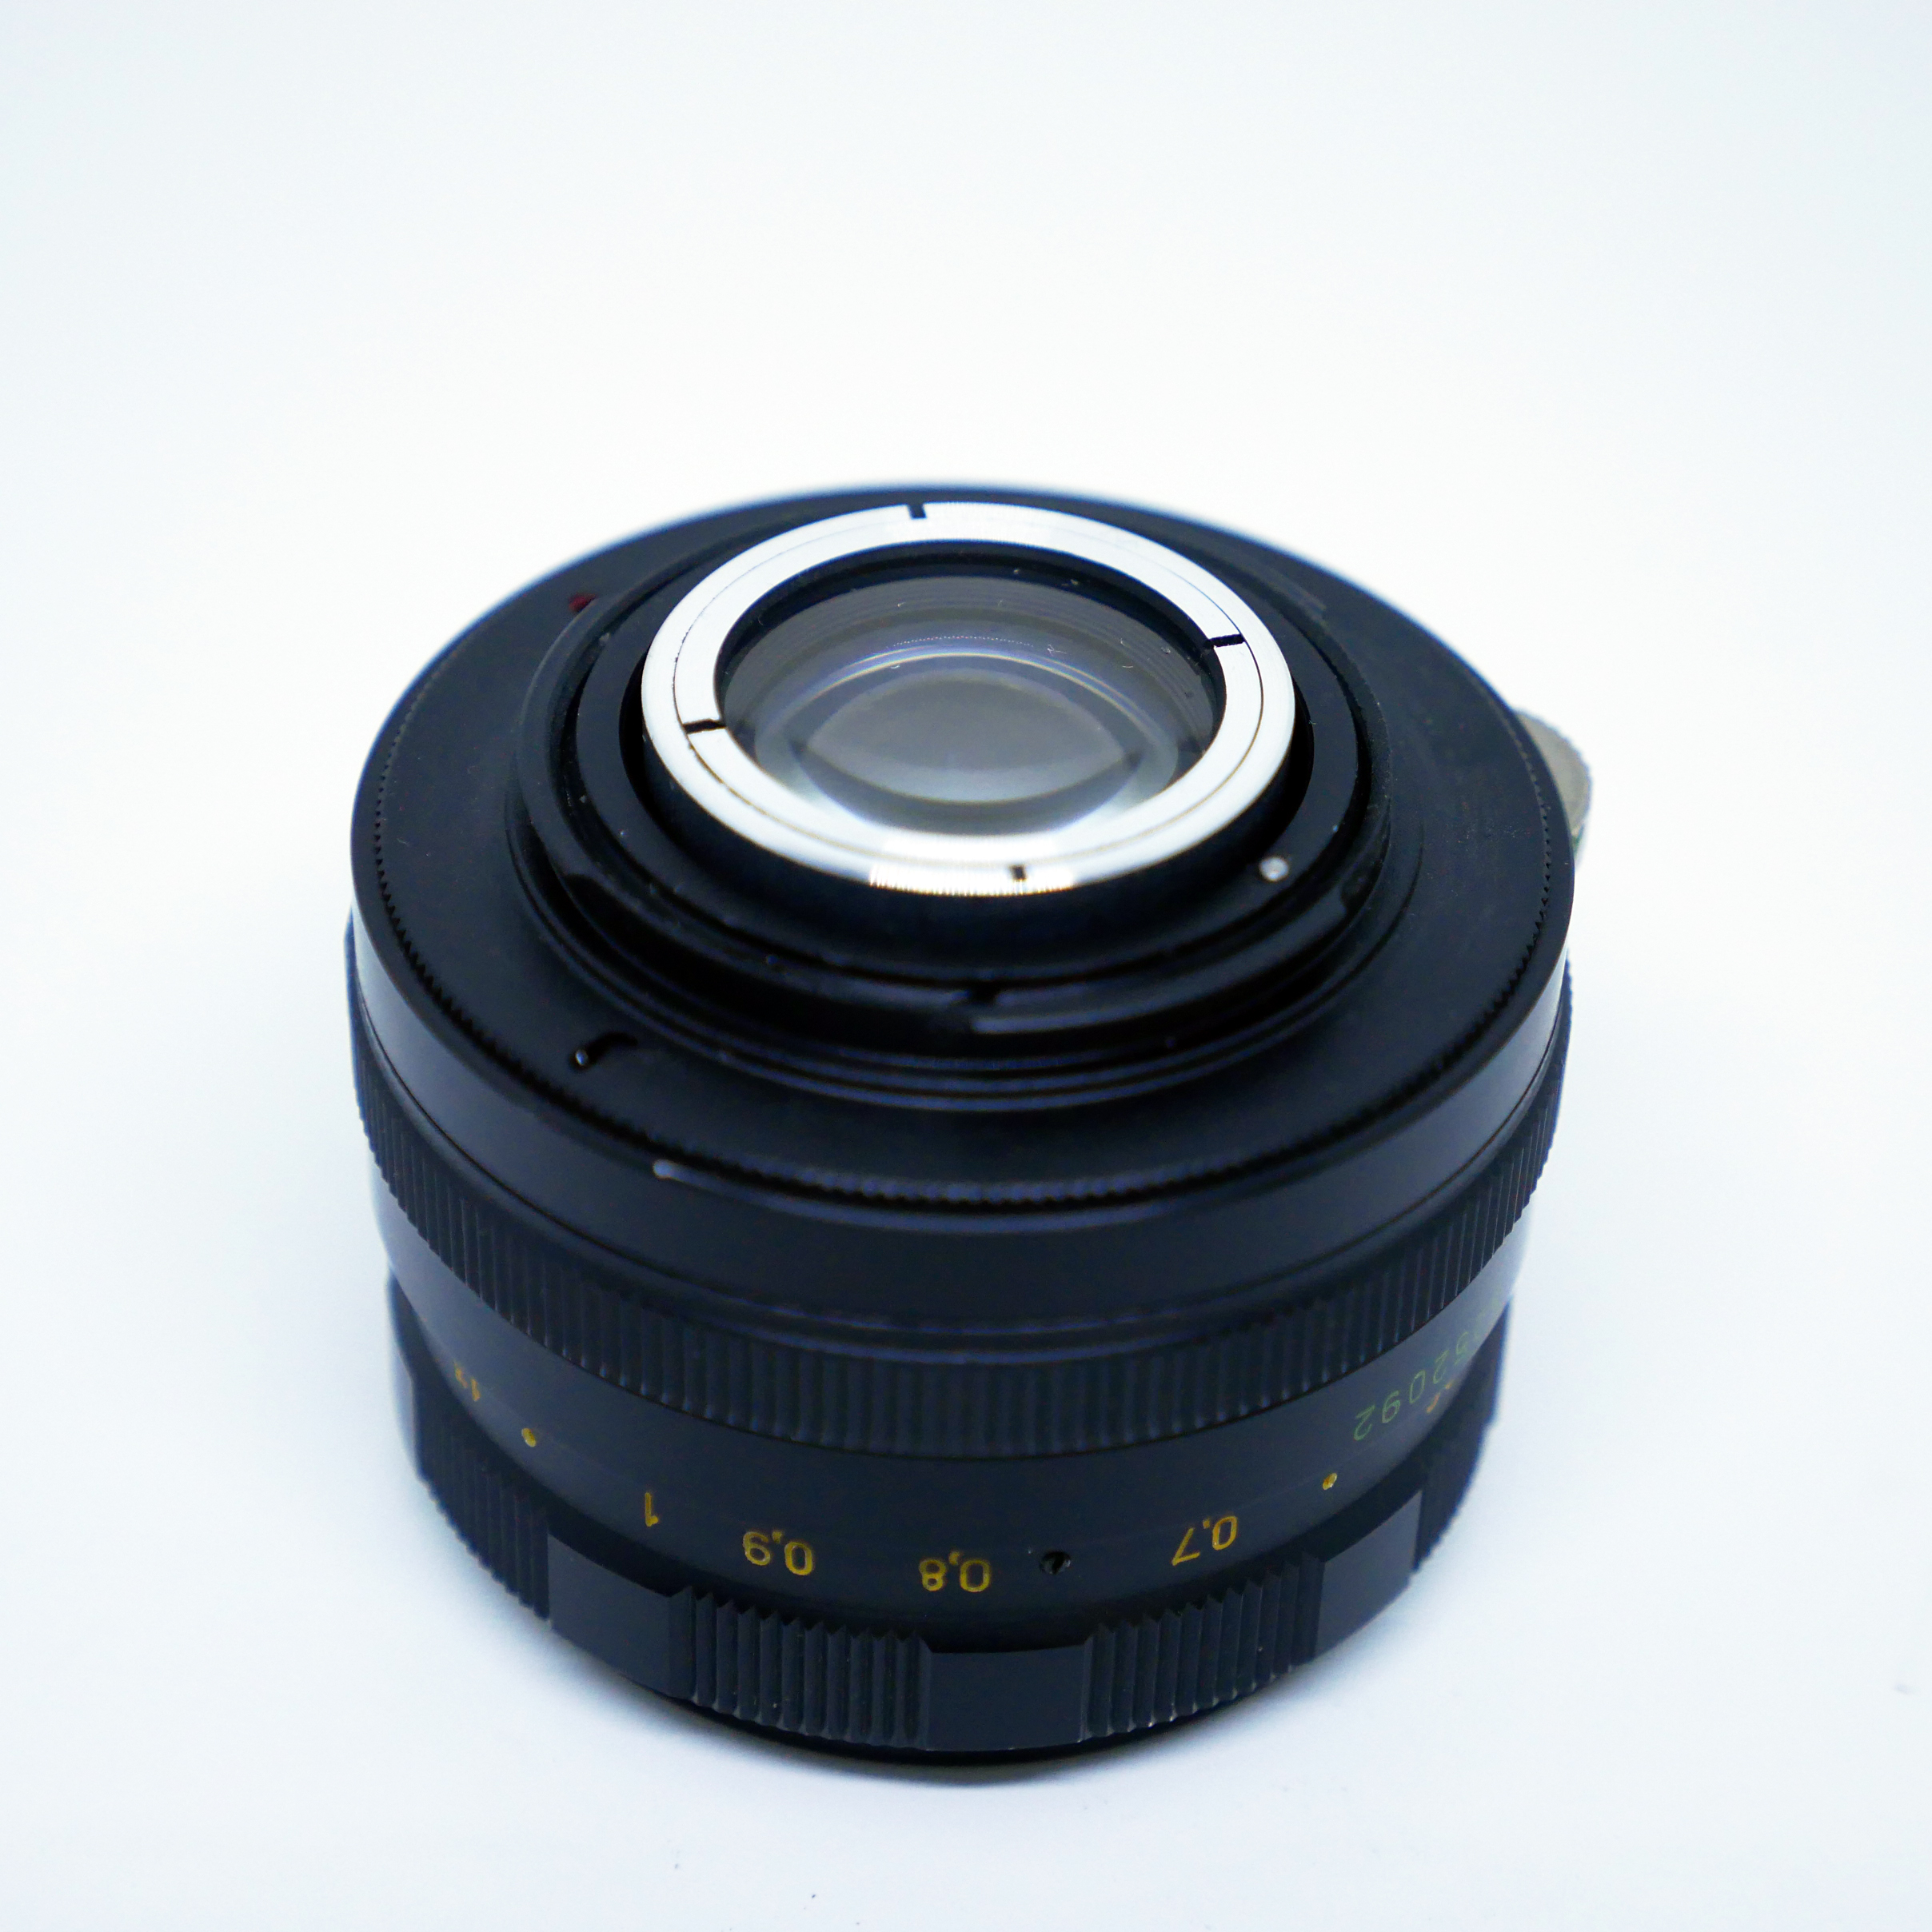 HELIOS 44M 58mm f2 0 for Nikon (infinity focus)